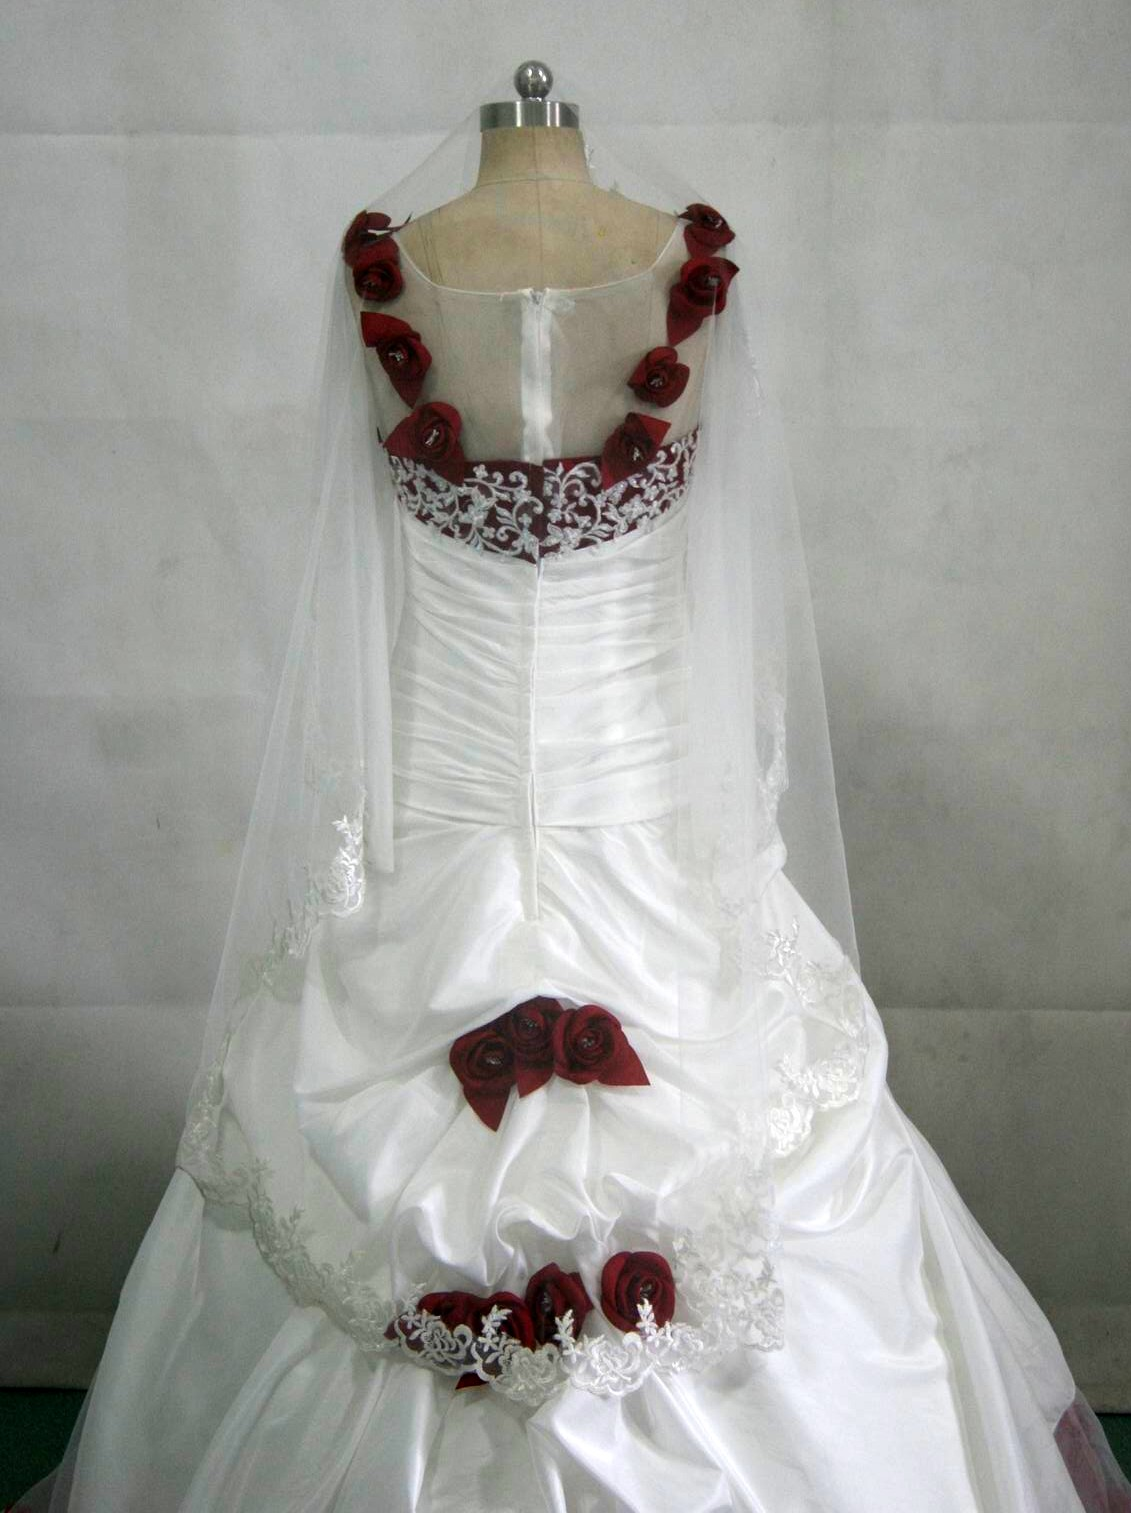 White wedding gown with red roses.